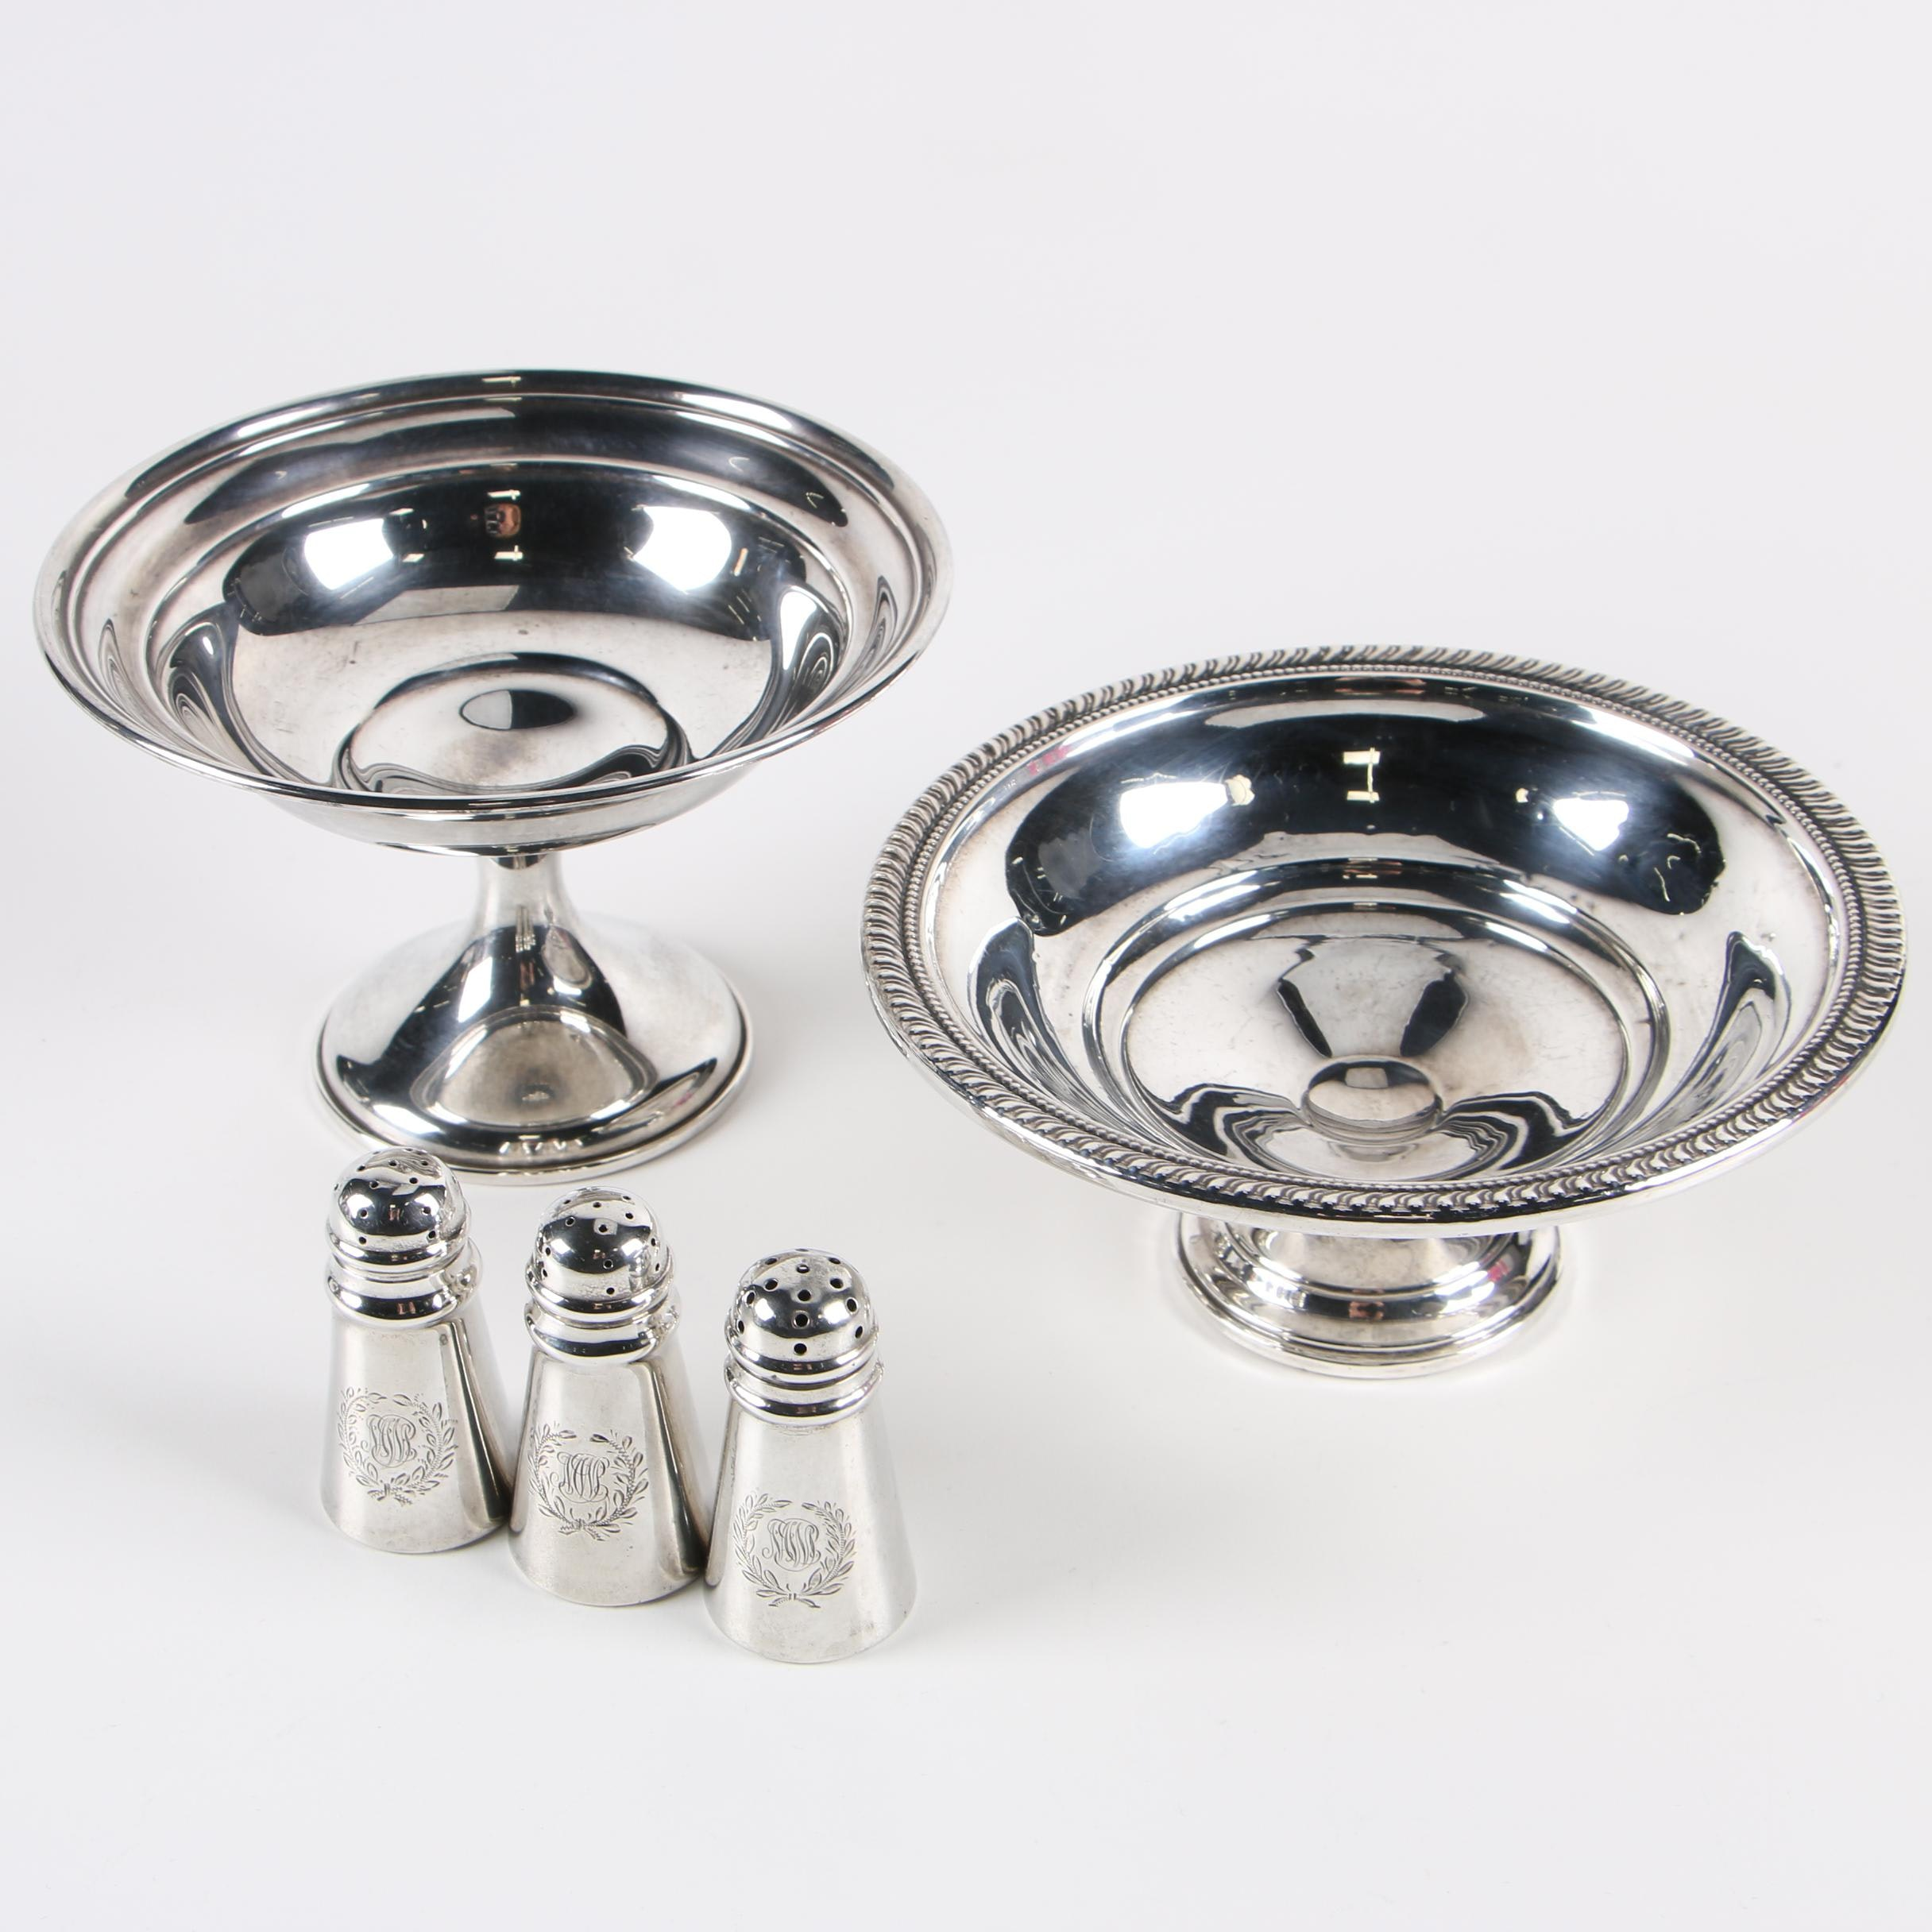 Gorham and Arrowsmith Weighted Sterling Compotes with Sterling Shakers